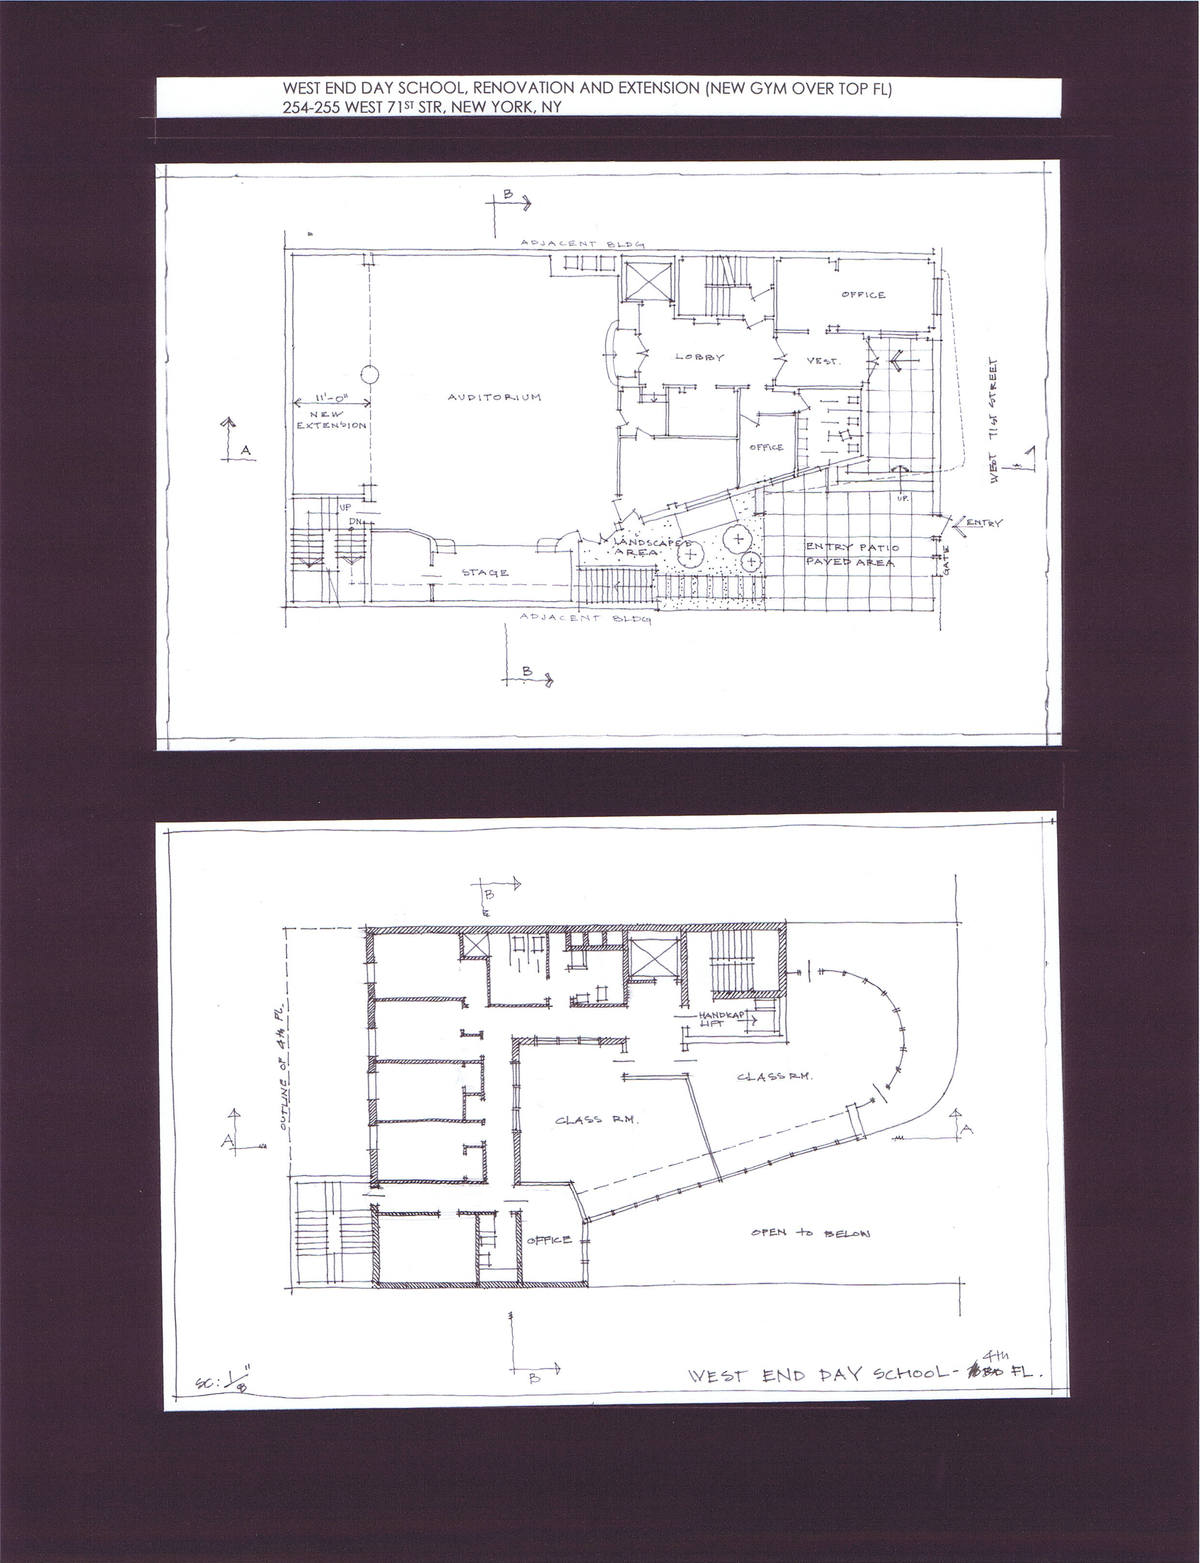 Ground and 4th Floor Plans